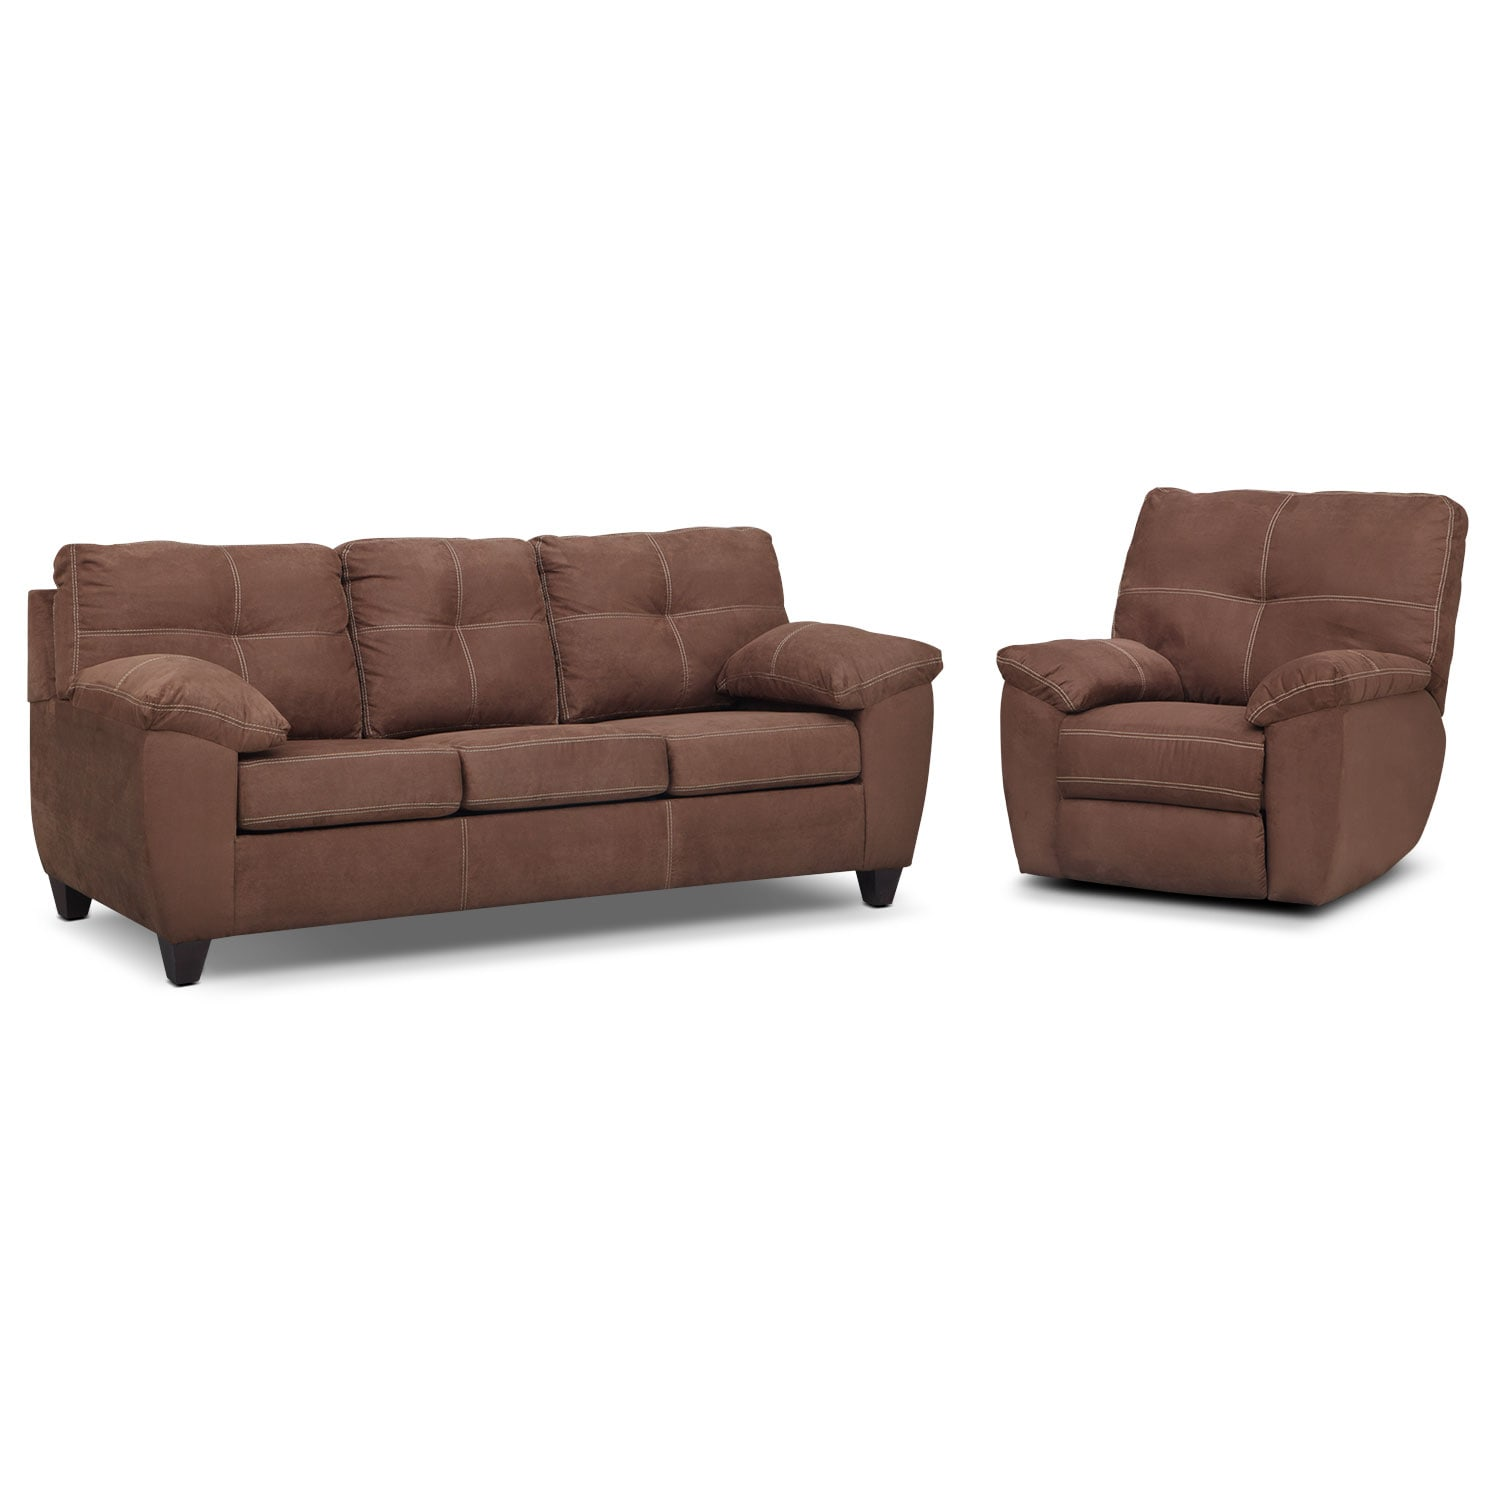 Rialto Sofa and Glider Recliner Set - Coffee